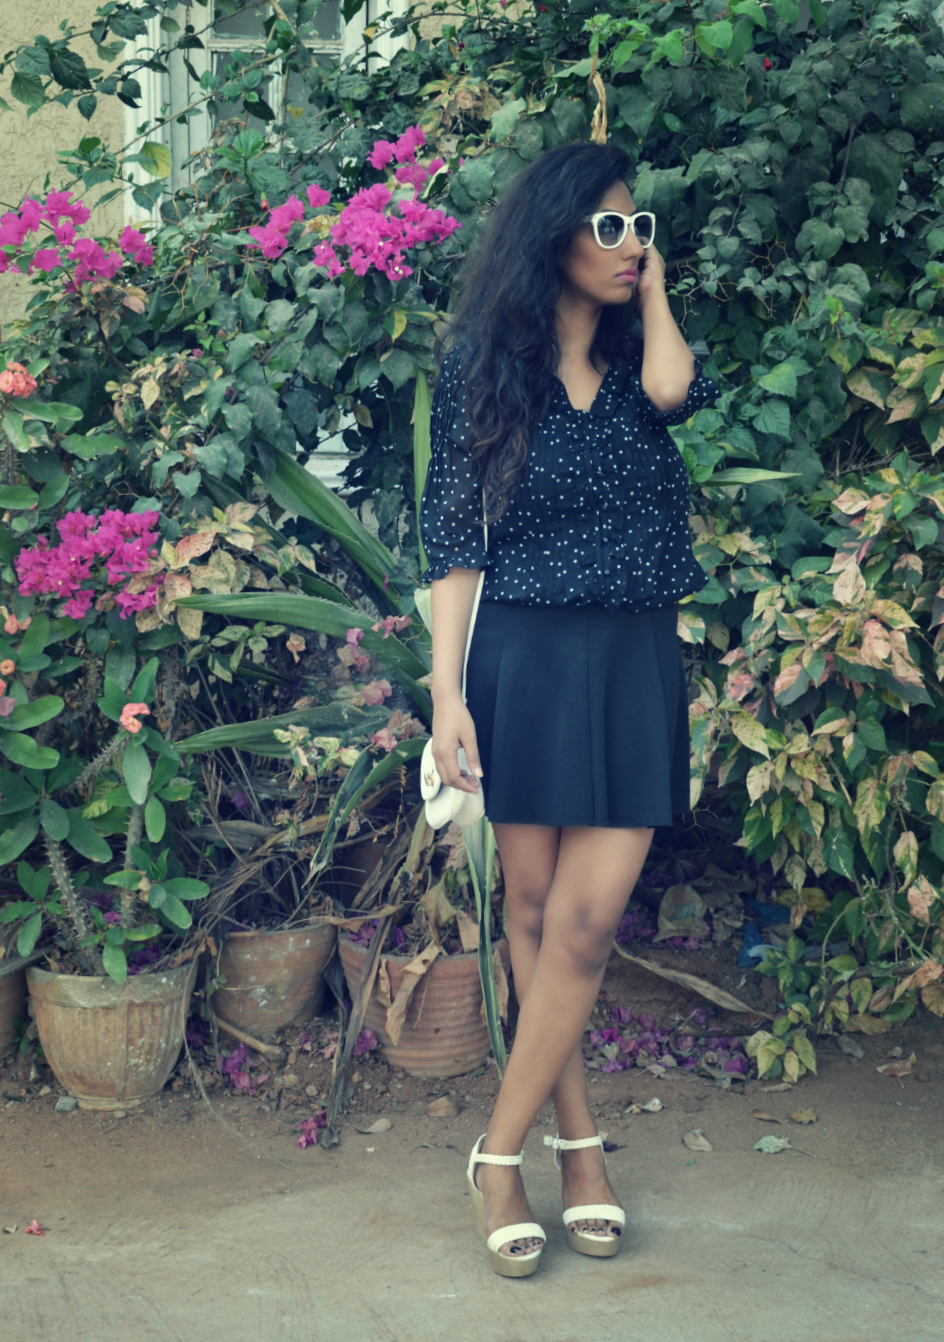 polka, summer, fresh, lookbook, street style, black, I Dress for the Applause, White, Sunglasses, vintage, retro, Indian, Indian blogger, Fashion